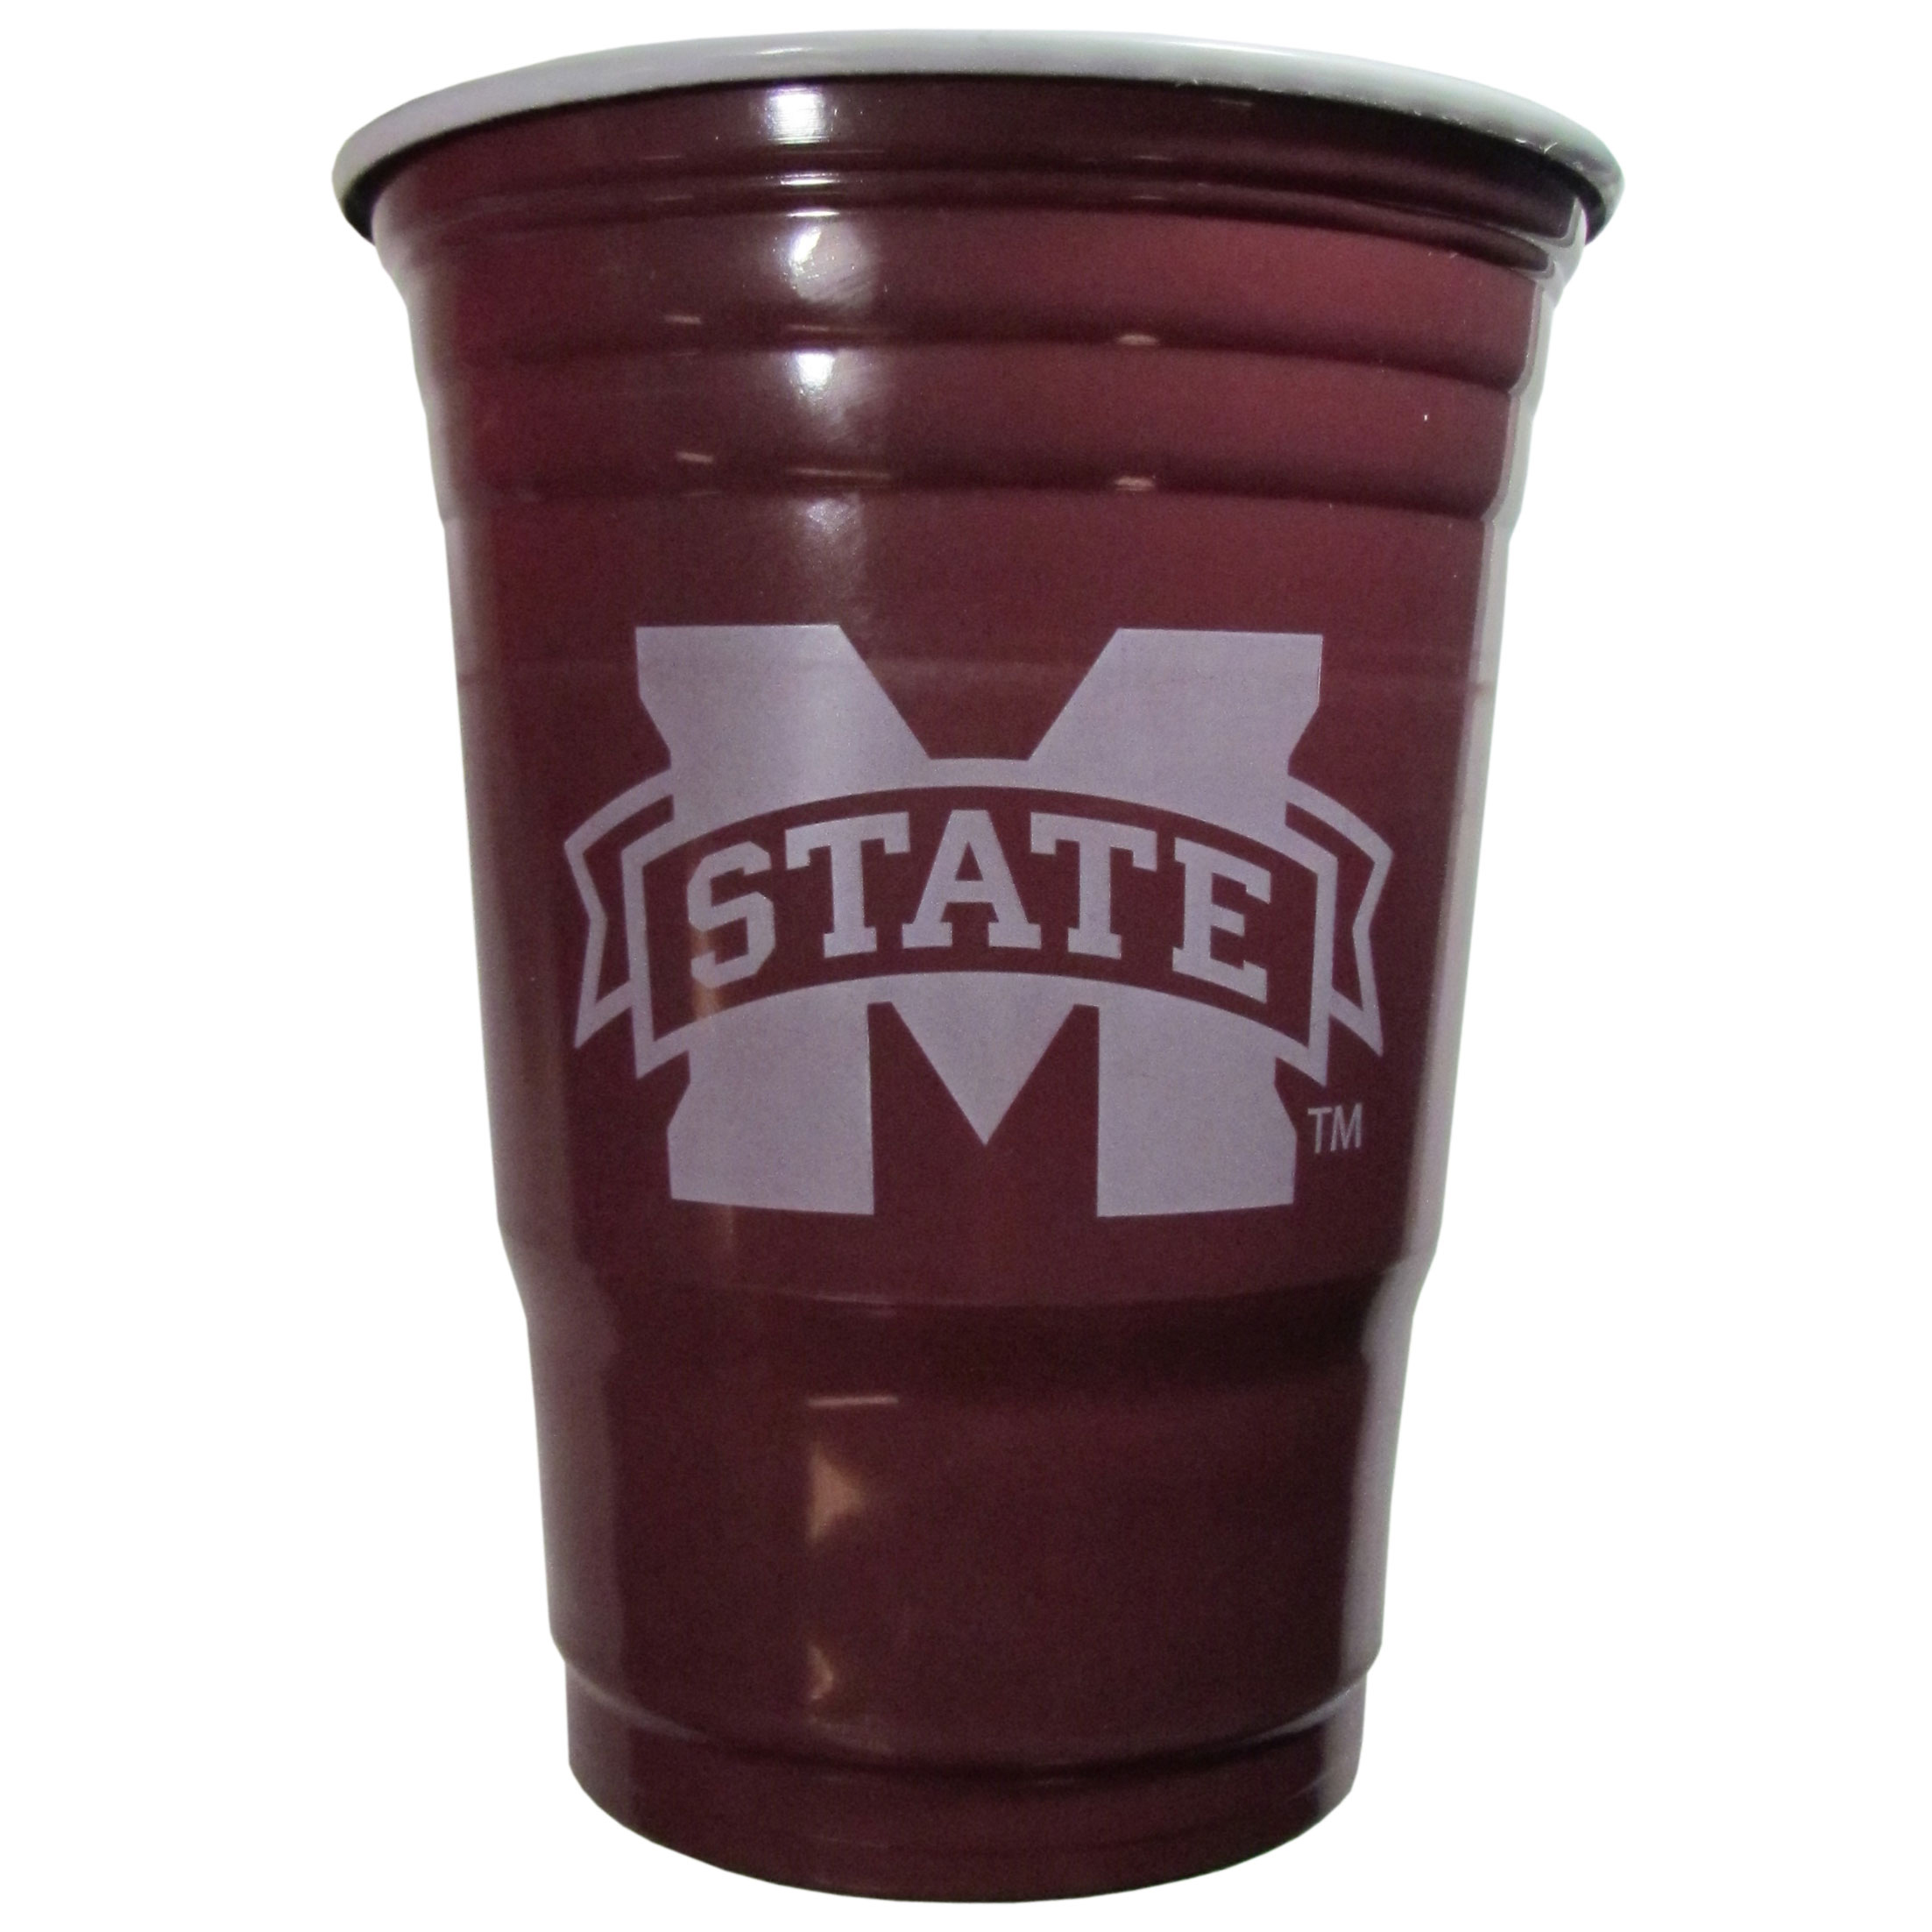 Mississippi St. Bulldogs Plastic Game Day Cups - Our 18 ounce game day cups are what every tailgating or backyard events needs! The cups feature a big Mississippi St. Bulldogs logo so you can show off your team pride. The popular 18 ounce size is perfect for drinks or ping pong balls! Sold in sleeves of 18 cups.